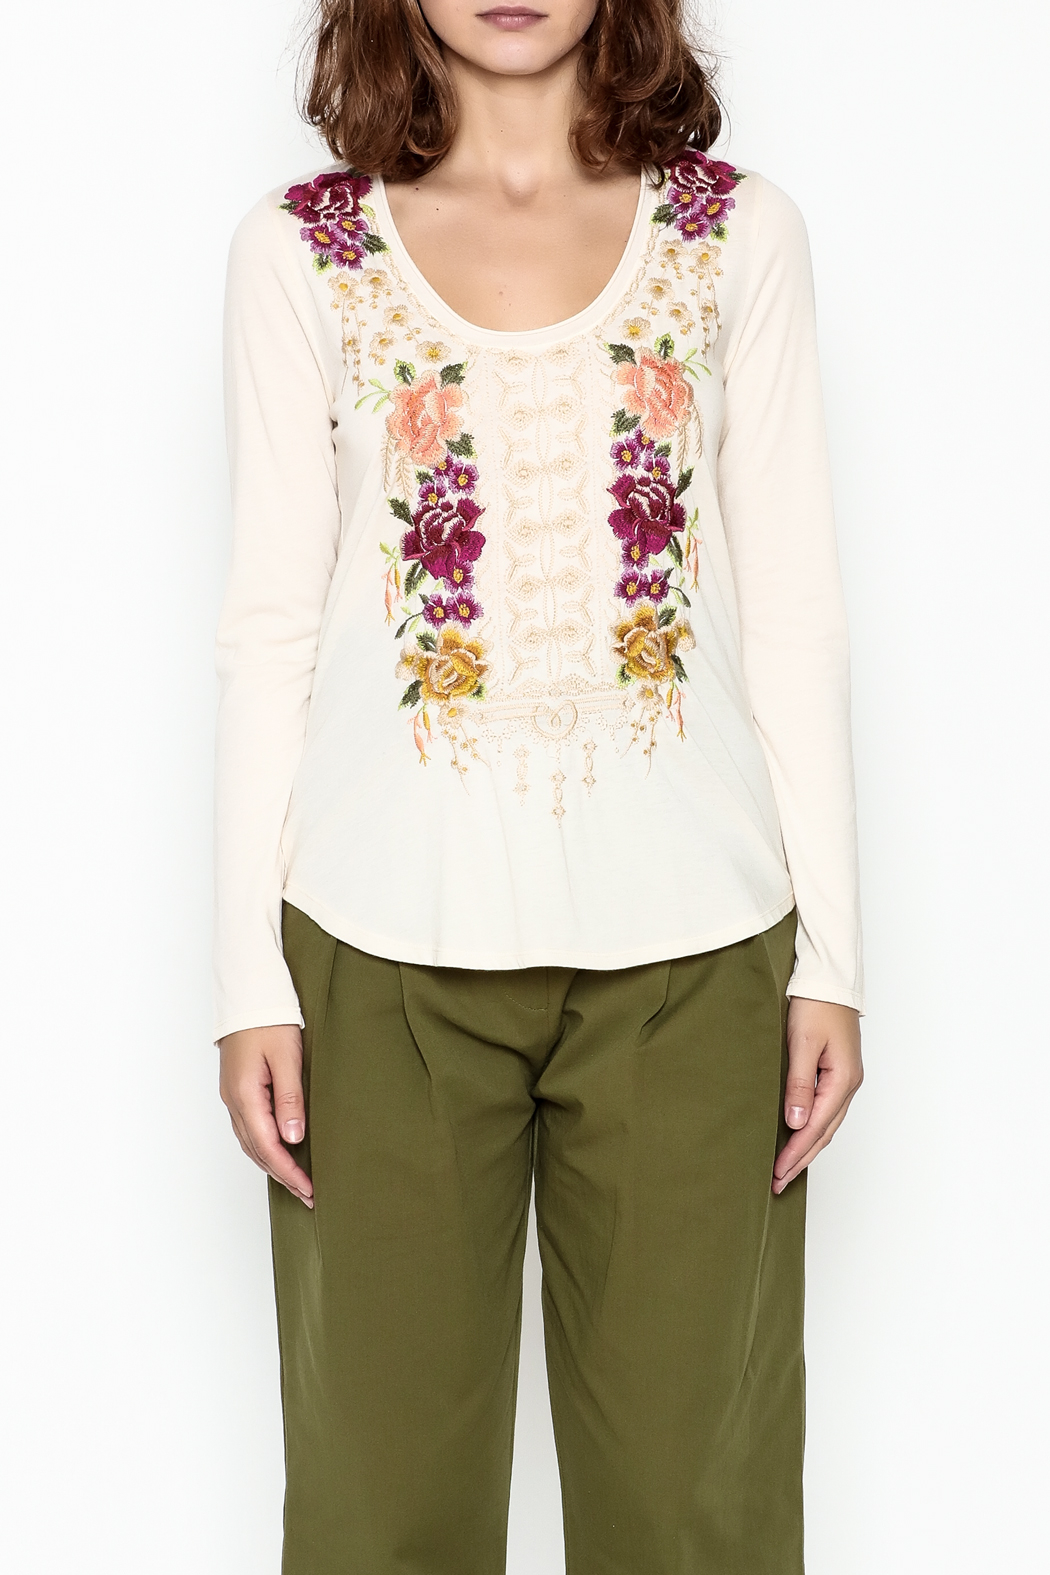 Johnny Was Flores Embroidered Tee - Front Full Image